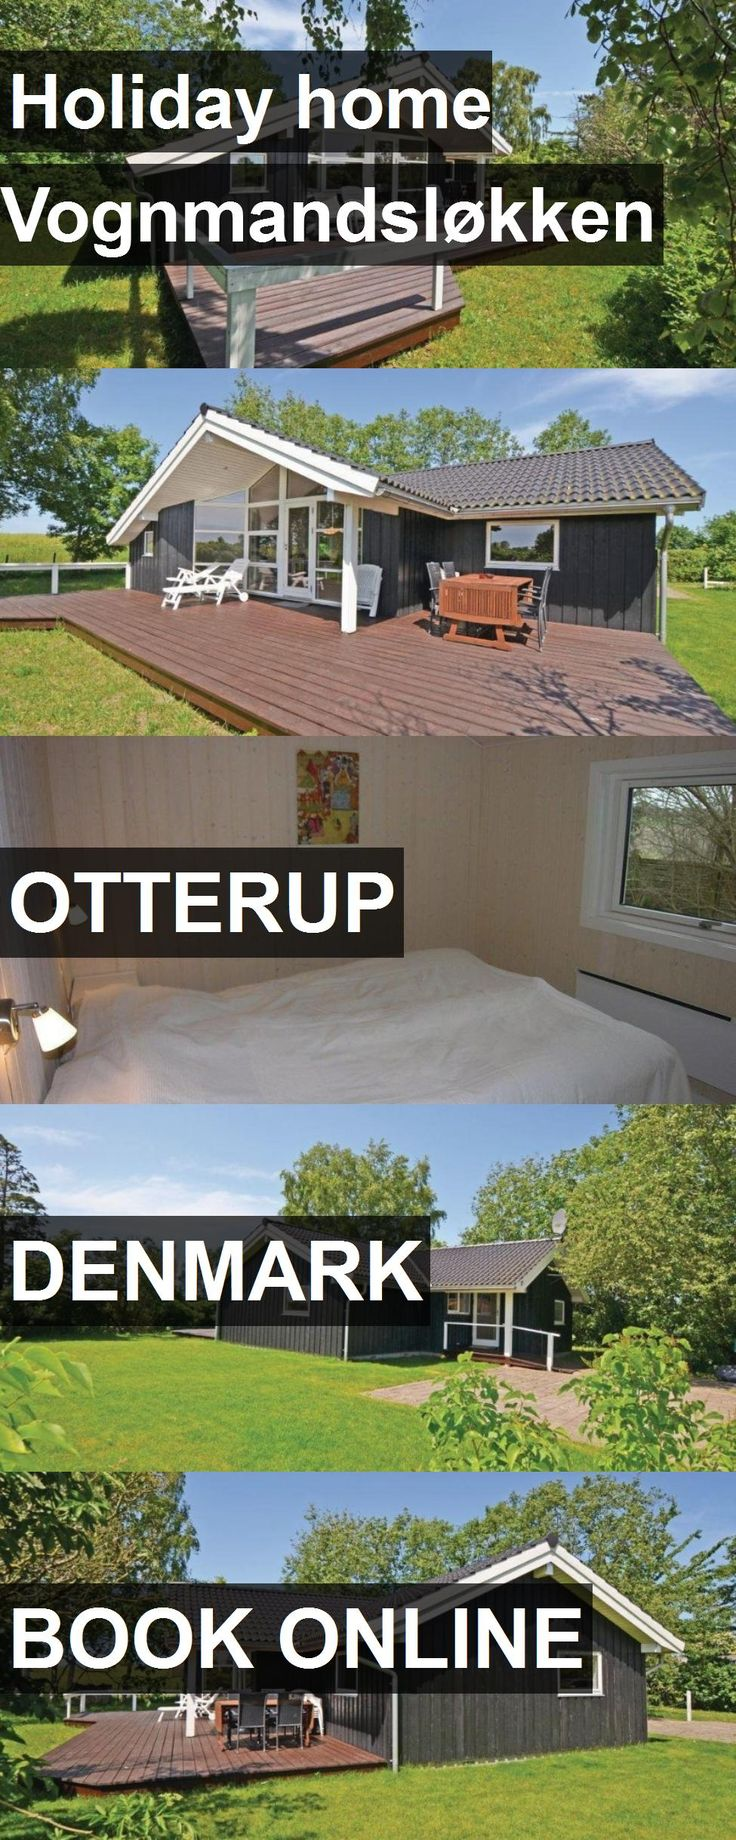 Hotel Holiday home Vognmandsløkken in Otterup, Denmark. For more information, photos, reviews and best prices please follow the link. #Denmark #Otterup #travel #vacation #hotel